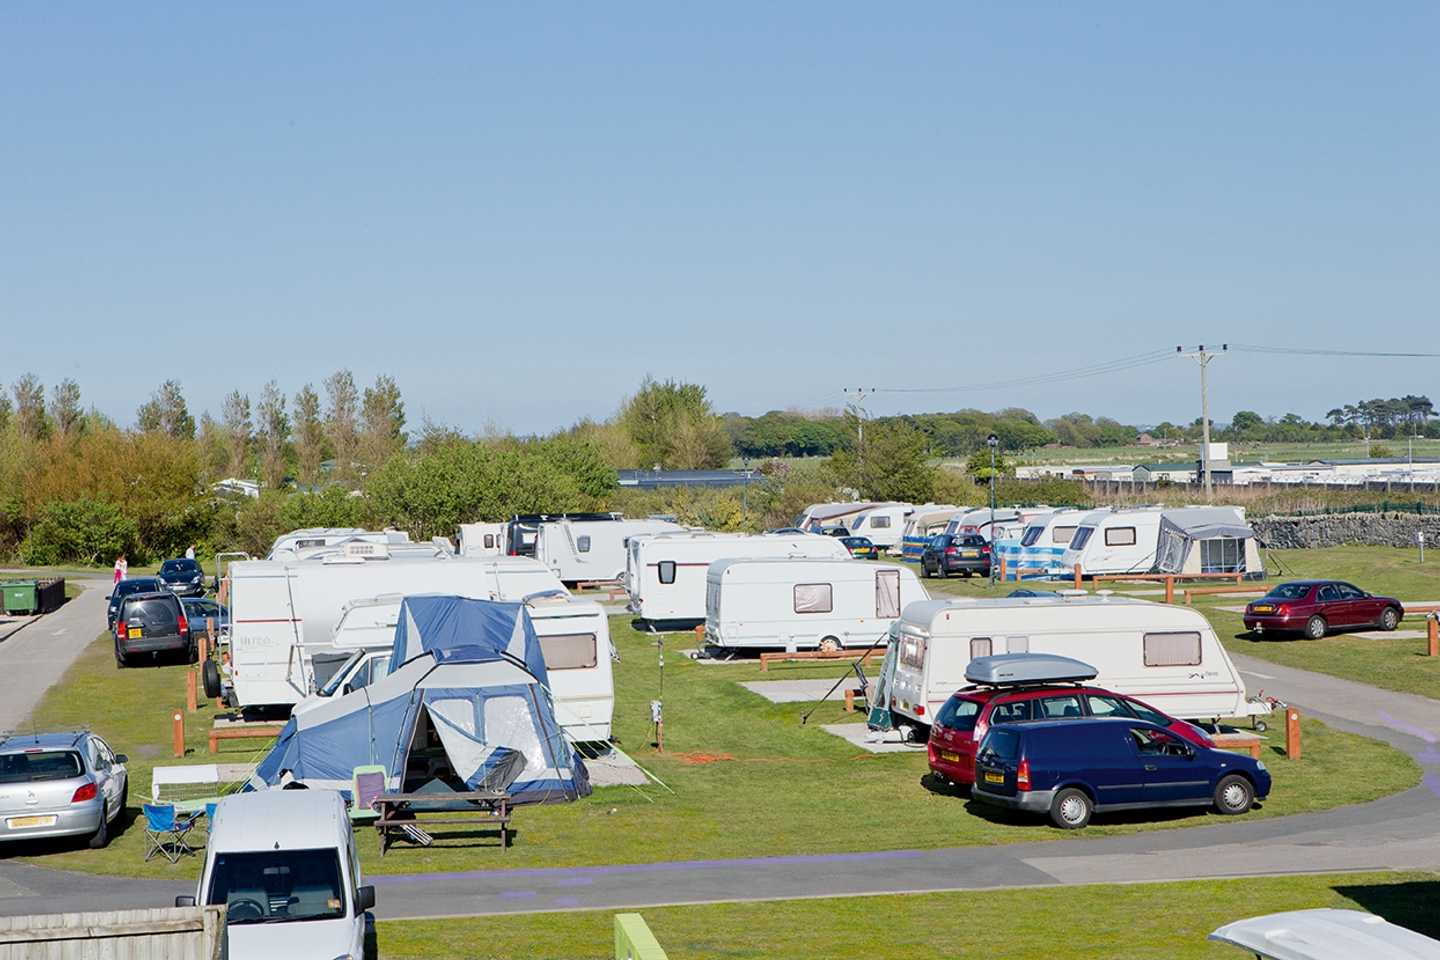 The touring area at Presthaven